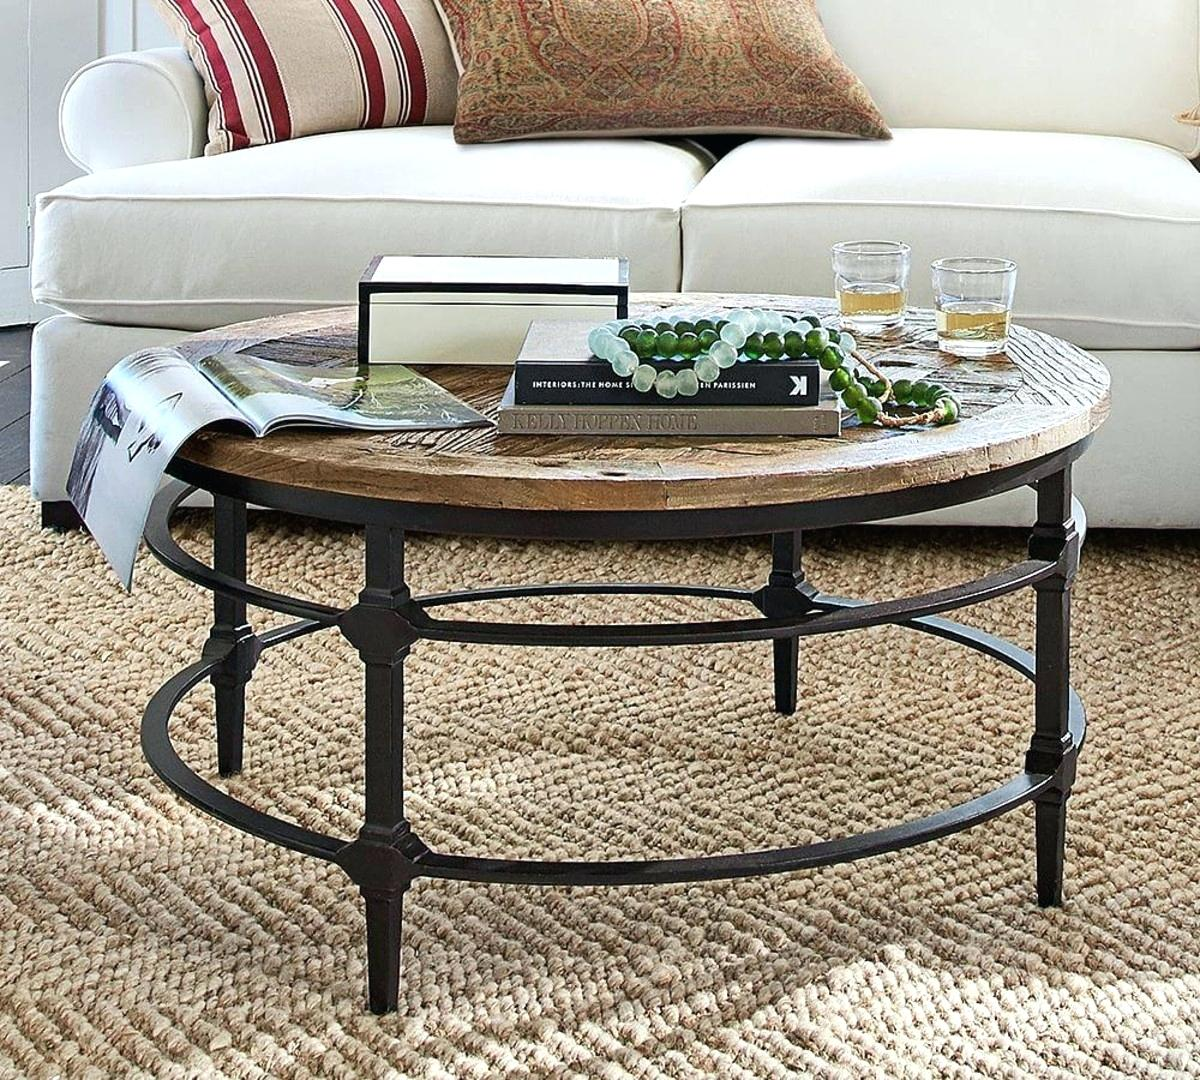 side table patio concrete wood outdoor small related amazing coffee round ideas teak metal outside tables with storage plastic end red accent resin wicker plans free full size bbq